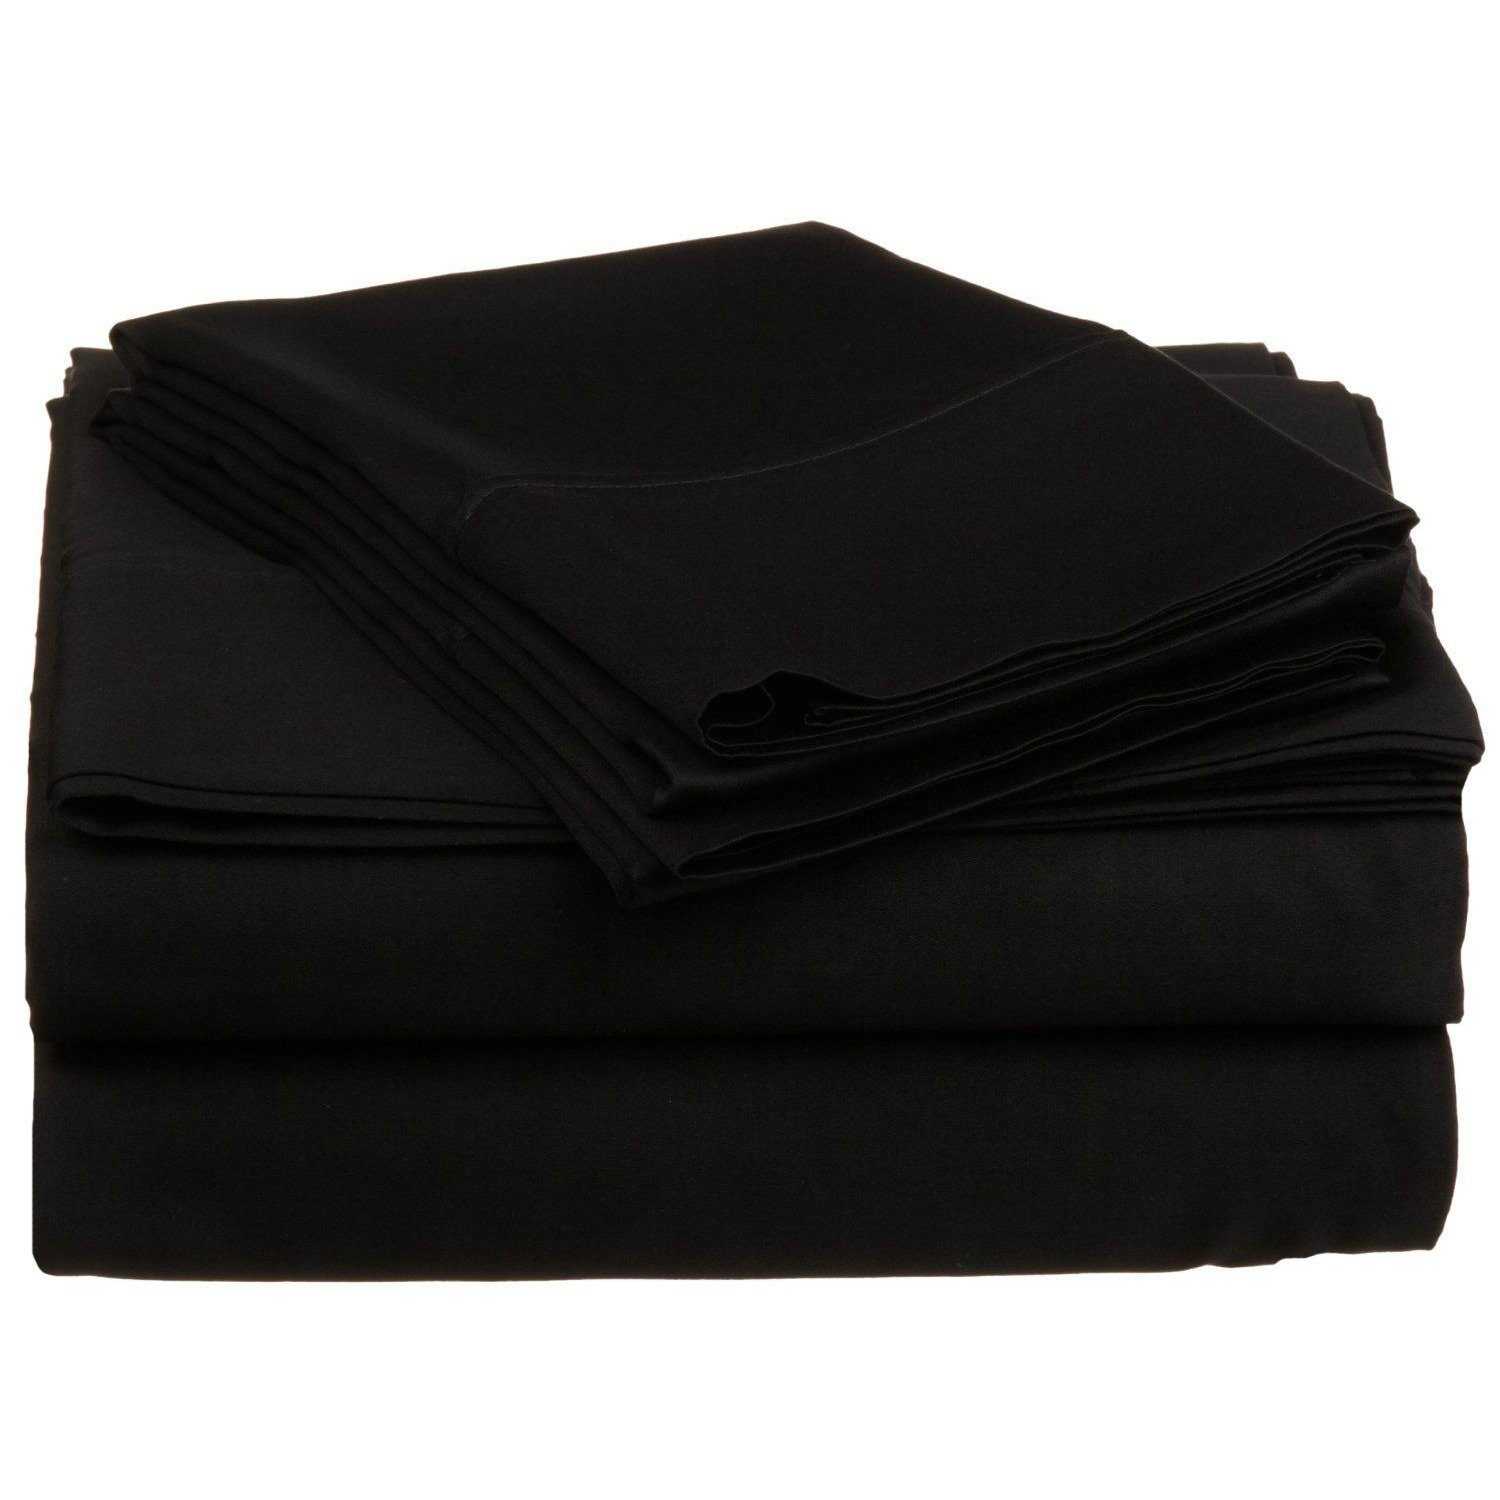 4 Piece Full Black Bed Sheet Set, Ultra cozy, super soft, lightweight, durable, satiny smooth, Fully Elasticized, Sateen weave with 300 thread count, Black, Cotton